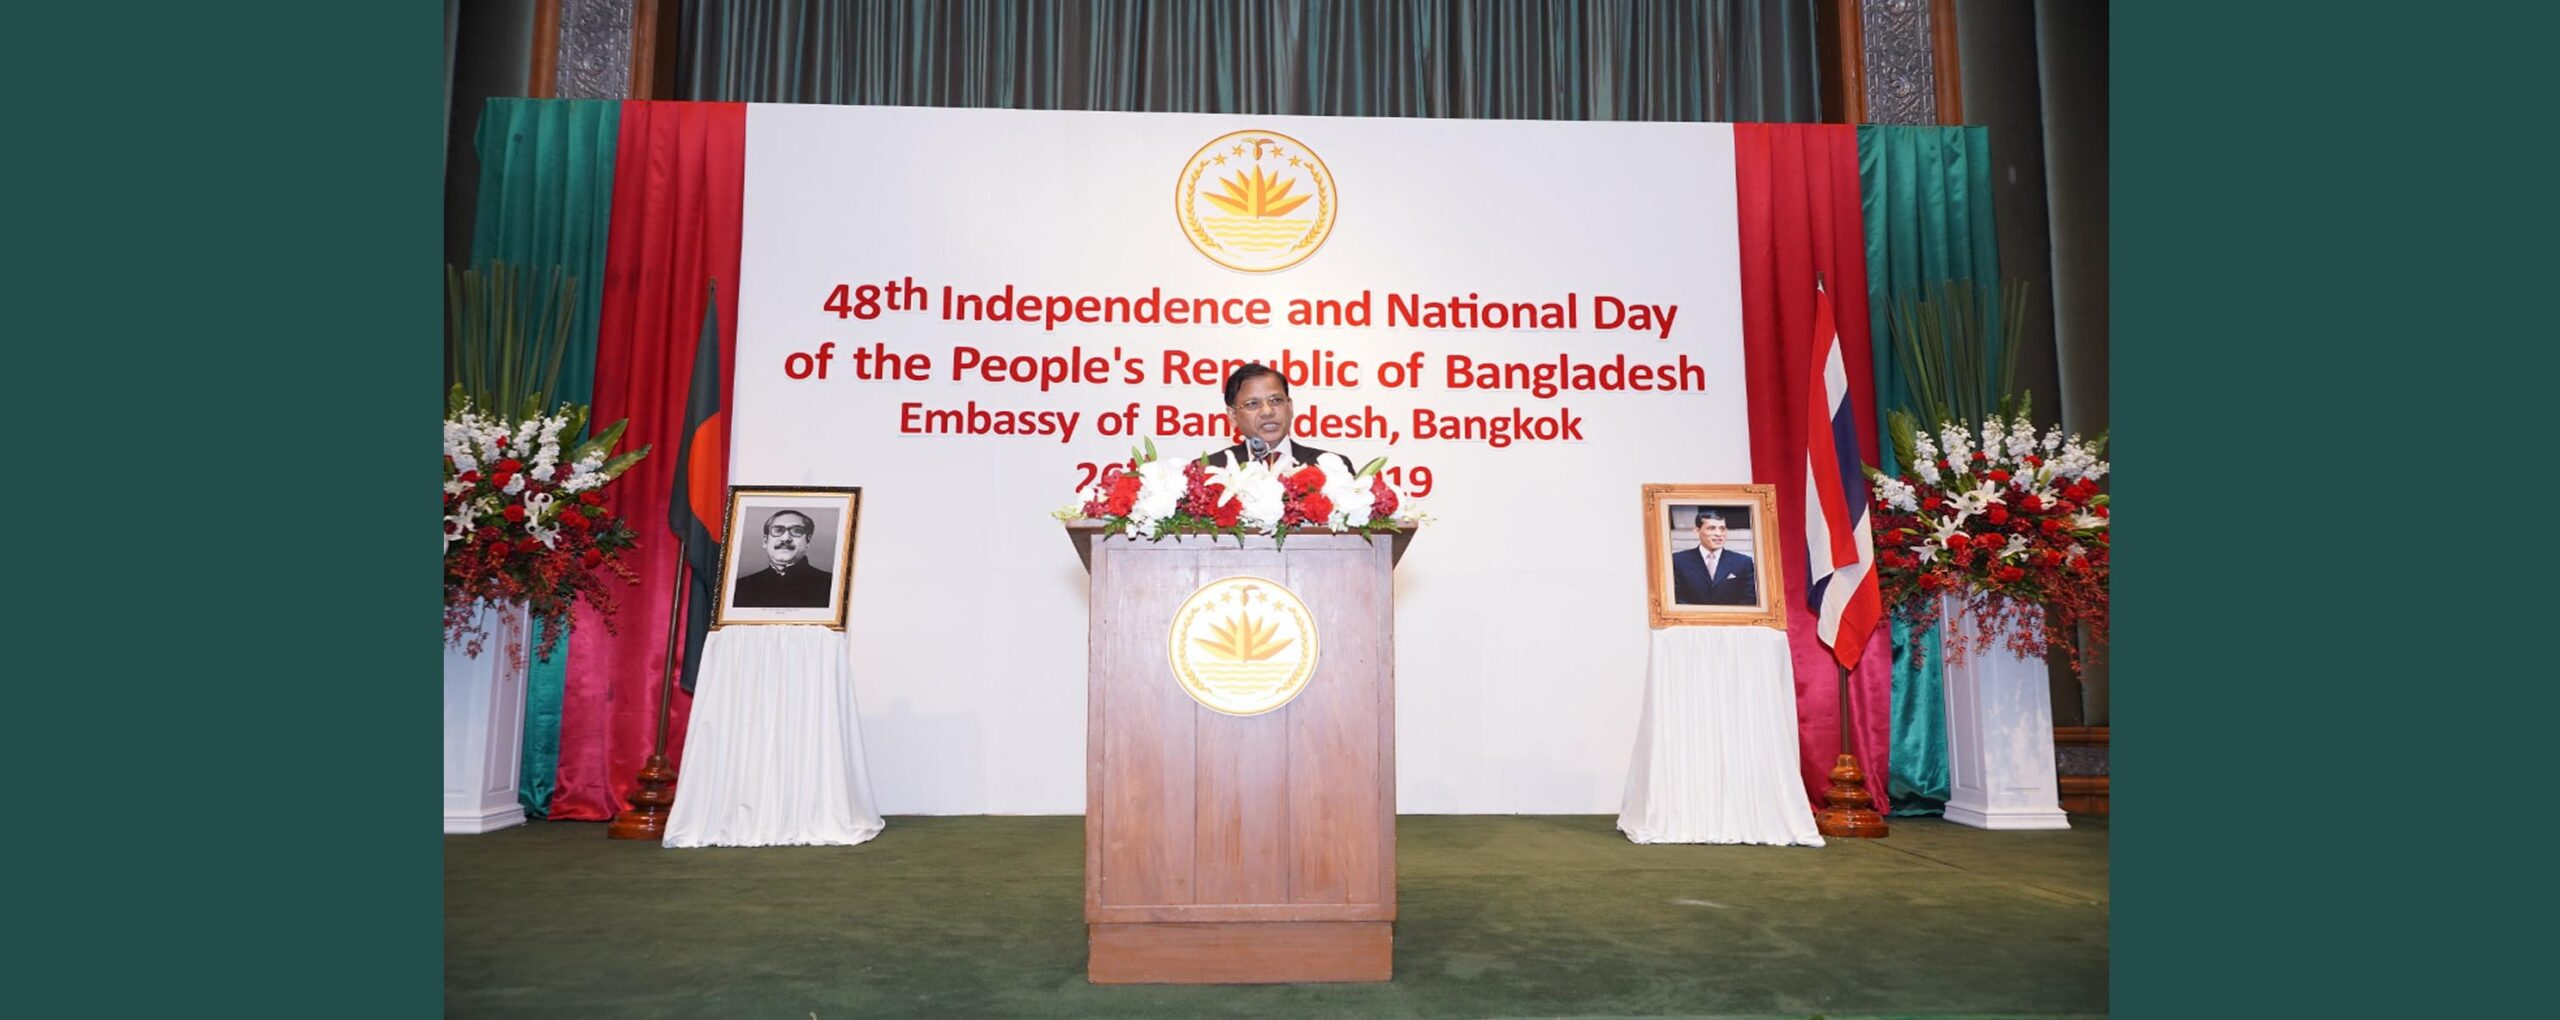 Celebration of the 48th Anniversary of Independence Day of Bangladesh in Thailand by the Embassy of Bangladesh